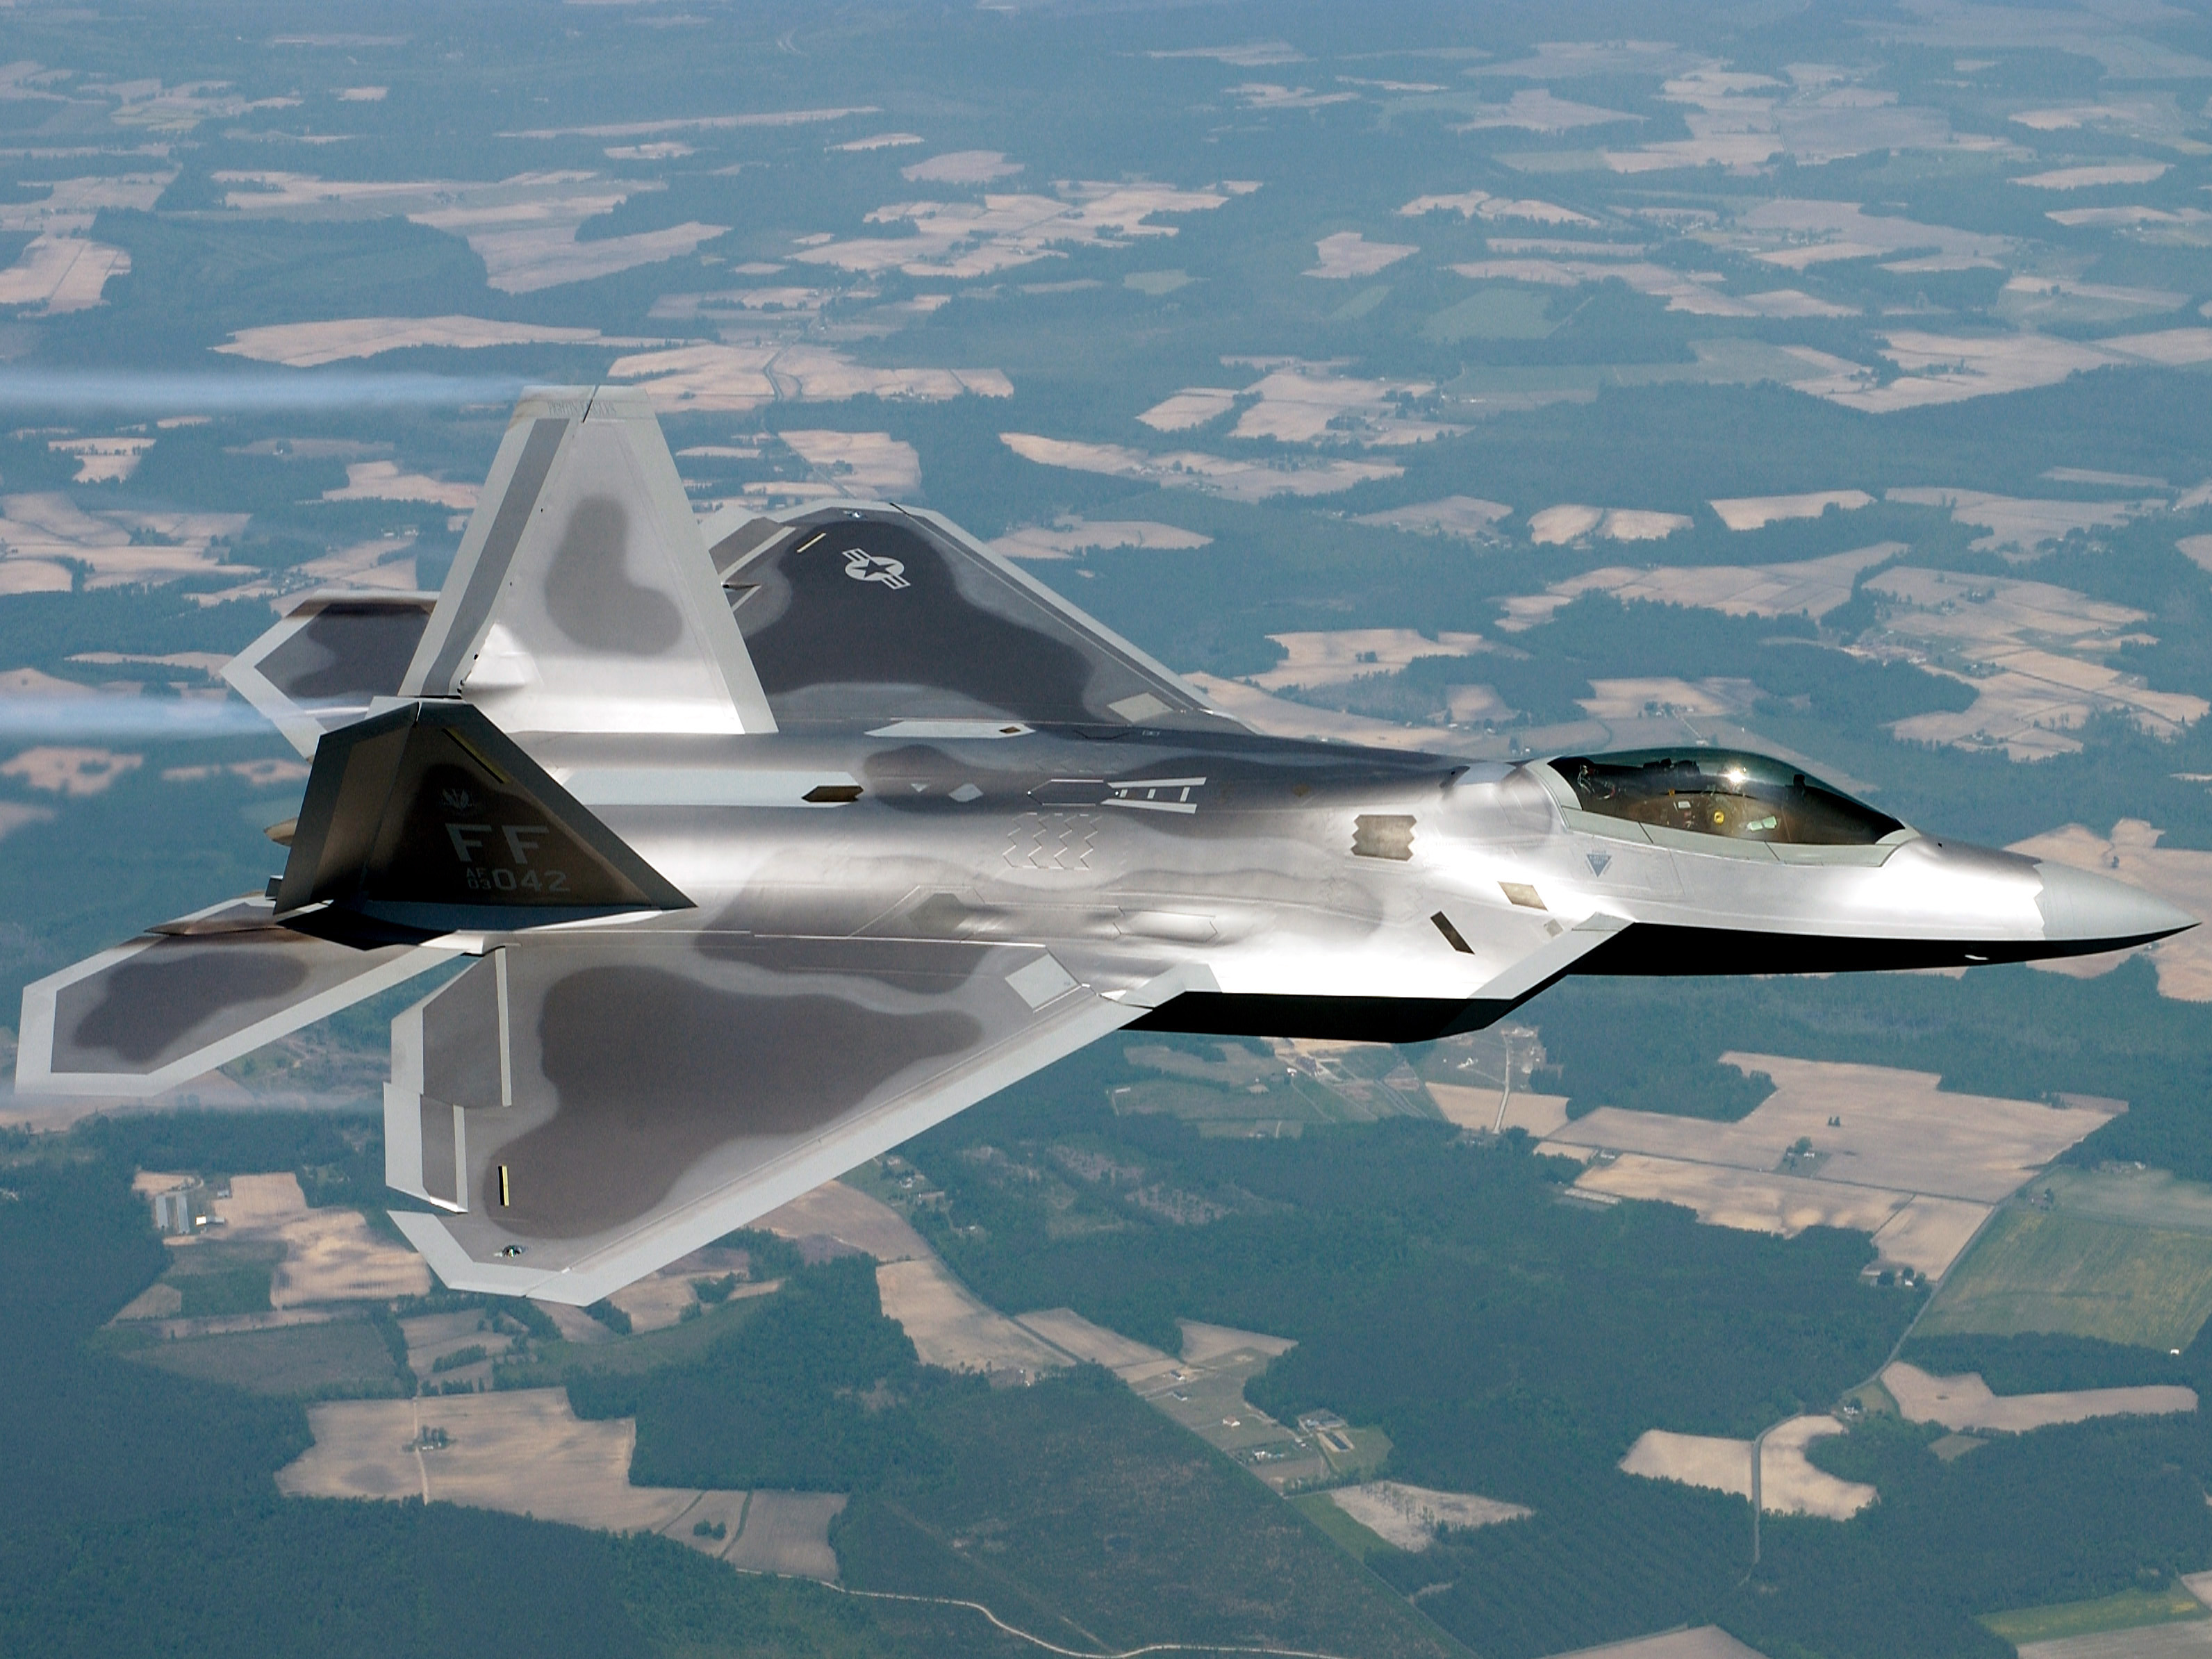 99 lockheed martin f-22 raptor hd wallpapers | background images